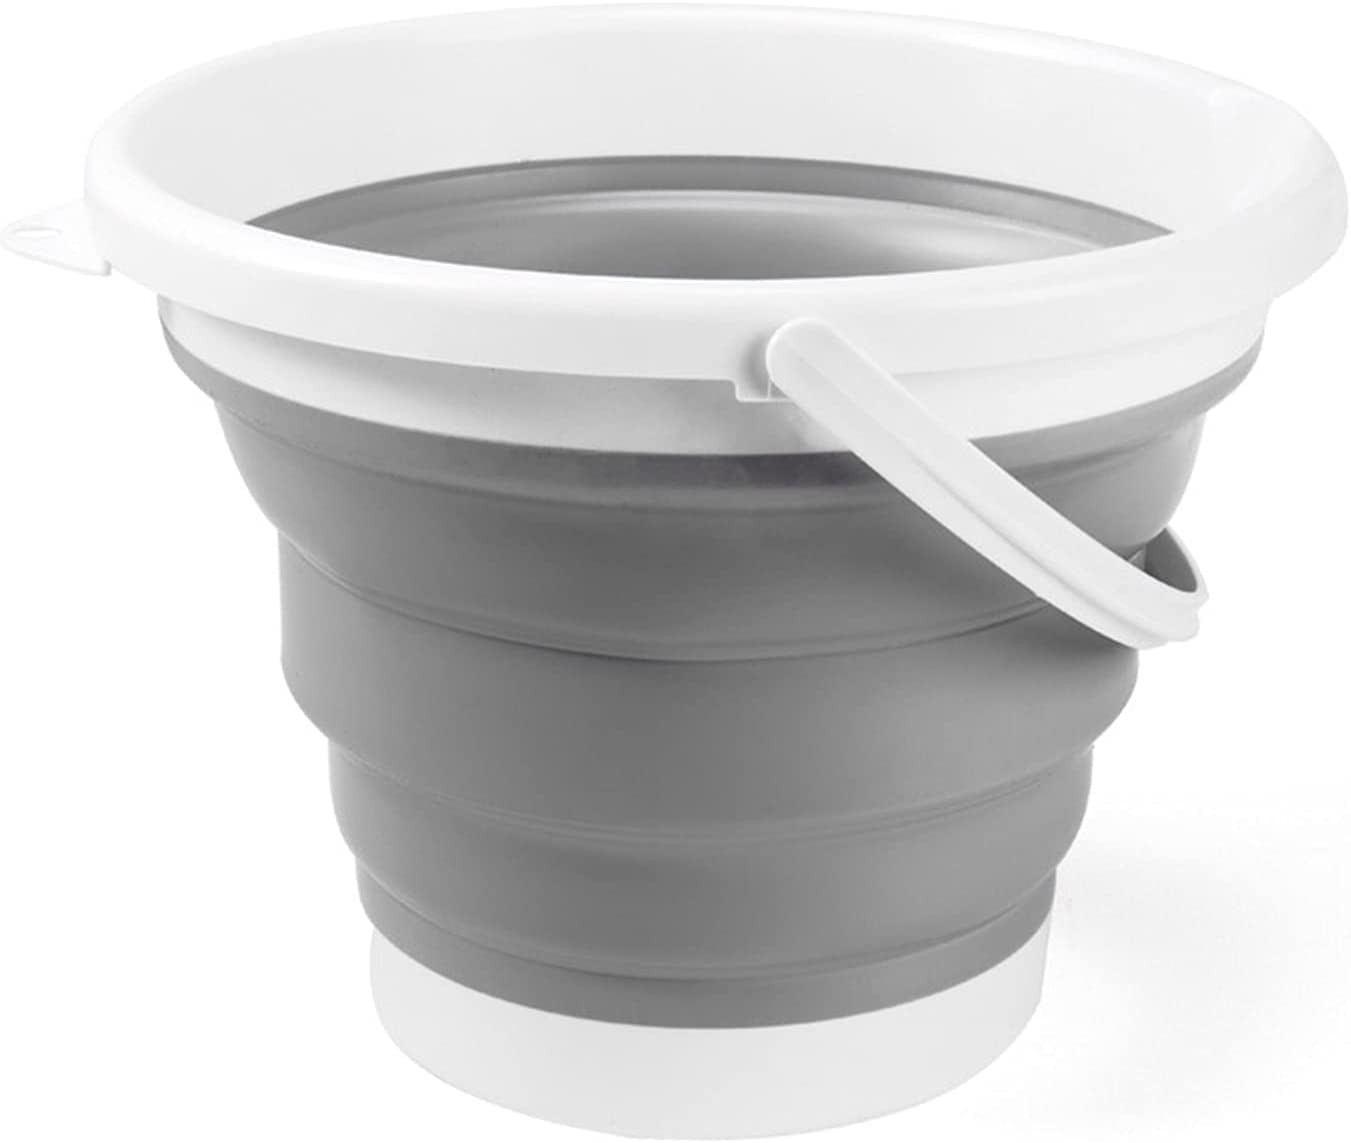 10L 5L 3 Collapsible Bucket Car Portable Folding Silicone Large discharge sale Max 73% OFF